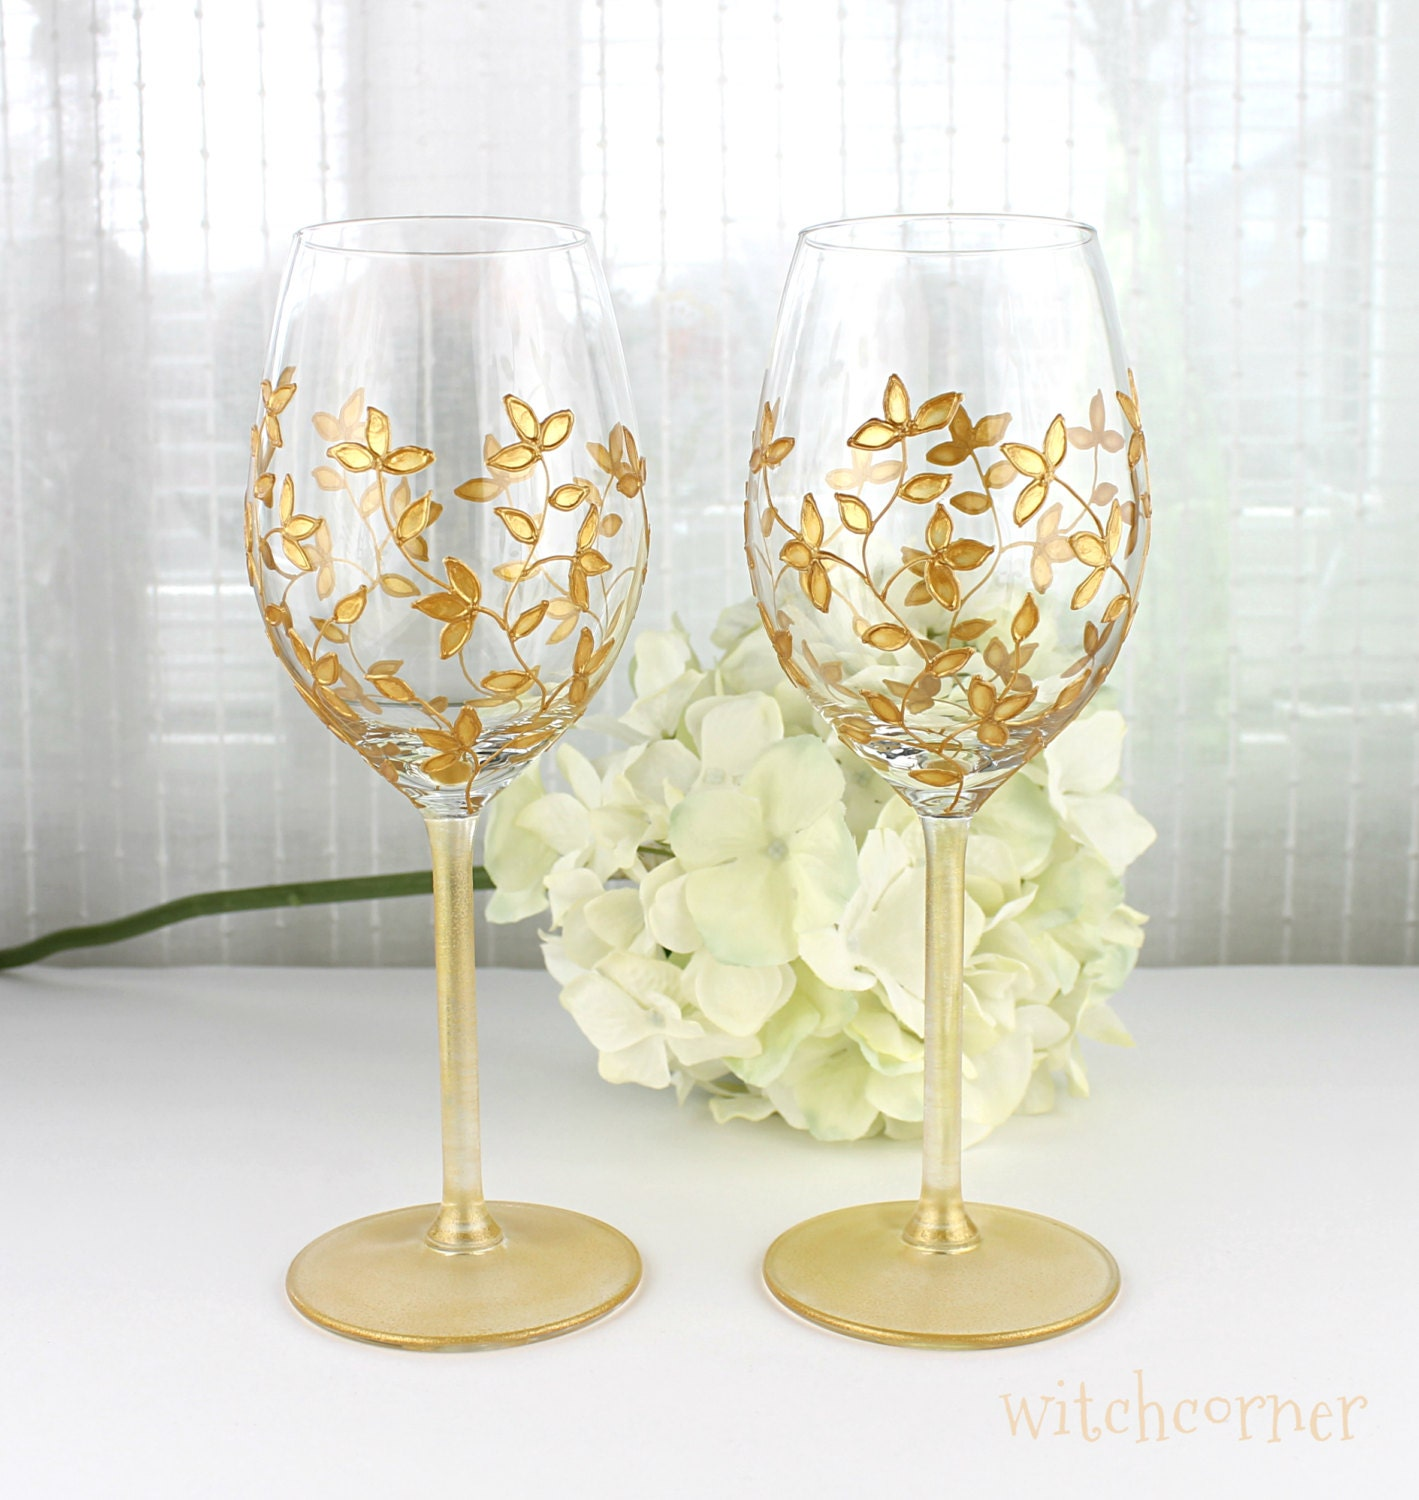 Wine glasses wedding glasses gold toasting glasses gold for Hand designed wine glasses